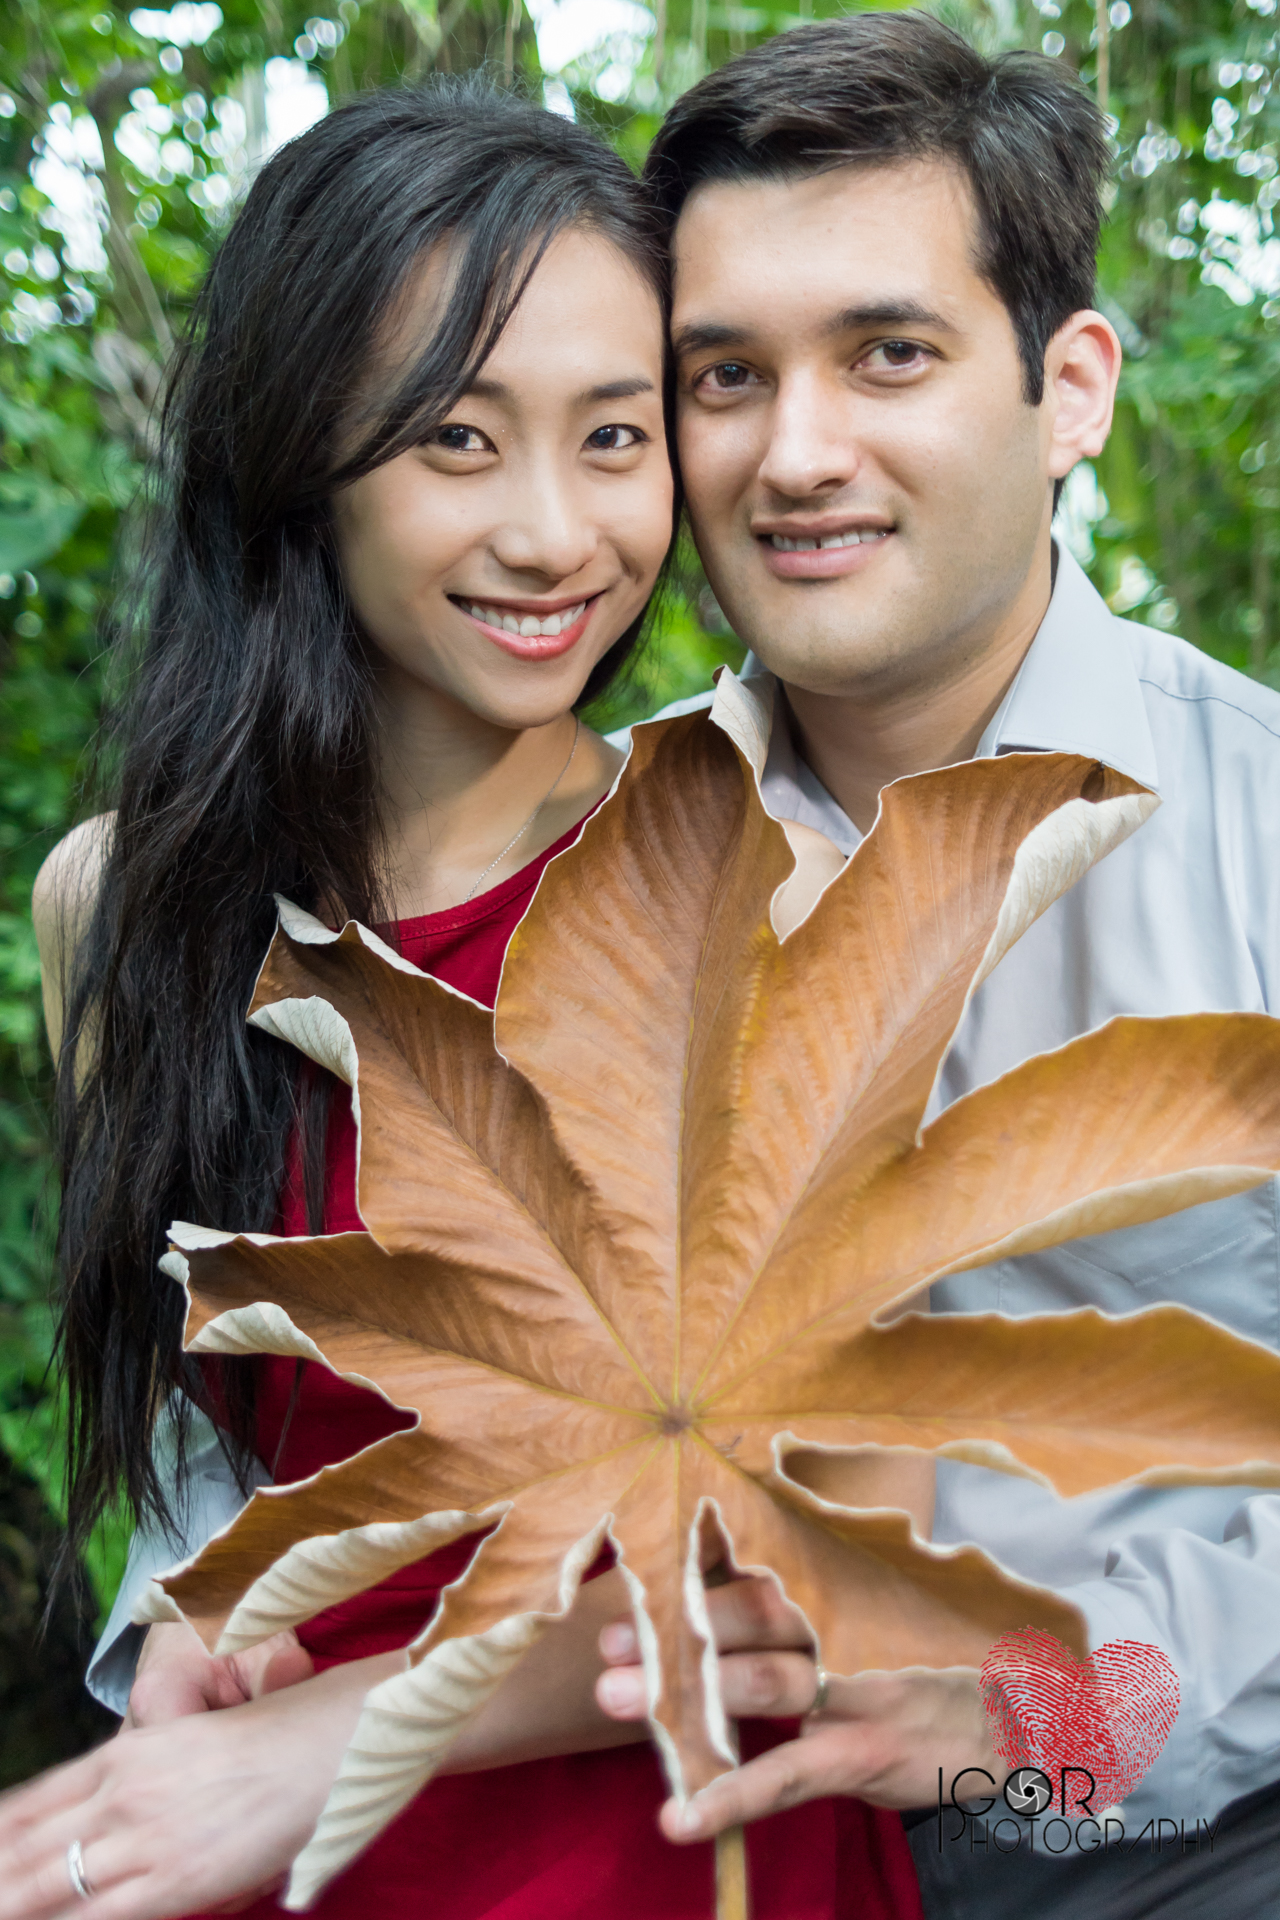 Botanical Garden engagement photographer